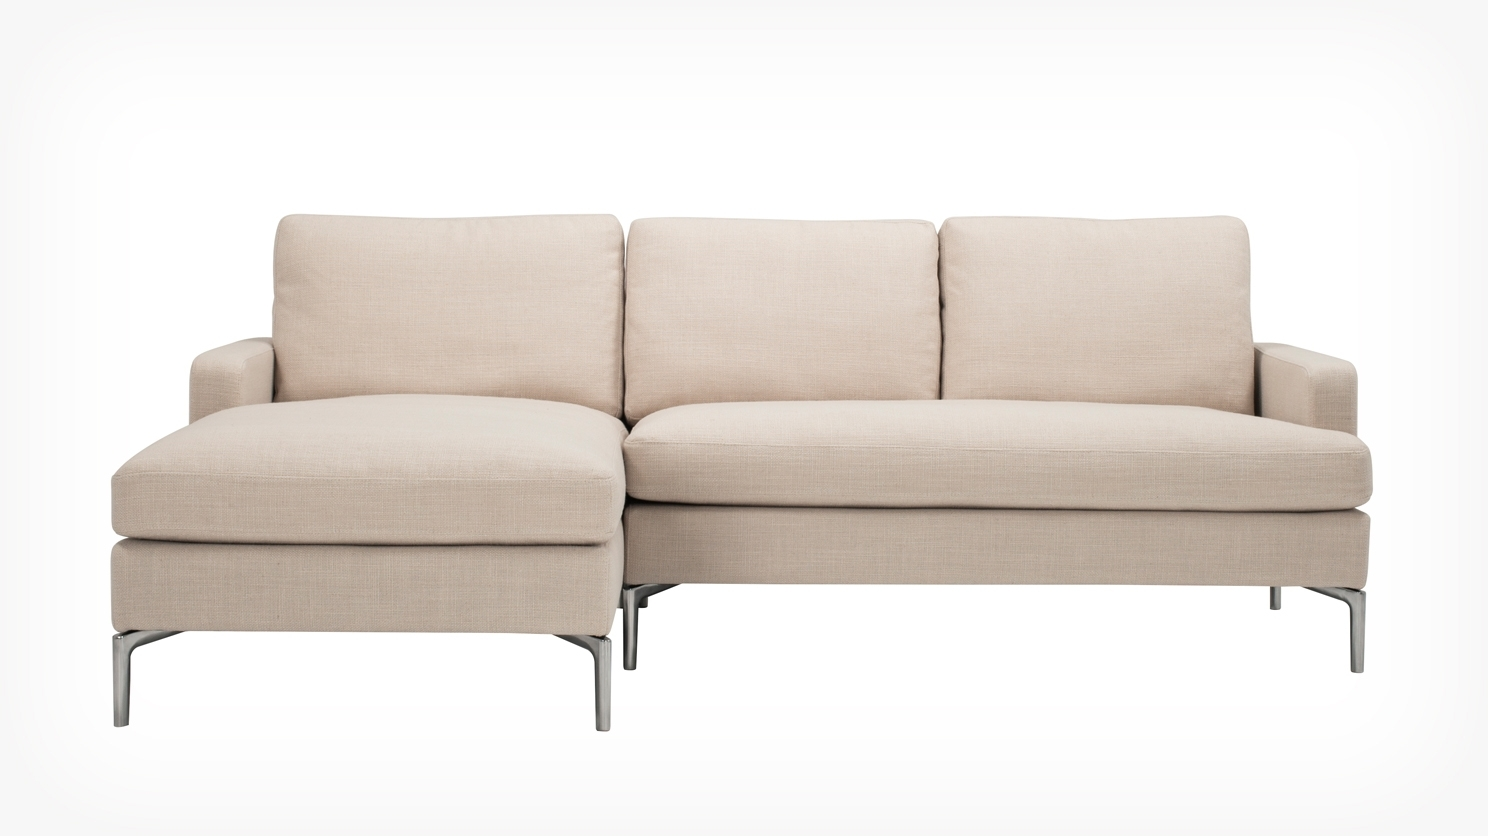 Eq3 | Eve Classic 2 Piece Sectional Sofa With Chaise – Fabric Throughout Eq3 Sectional Sofas (Image 2 of 10)